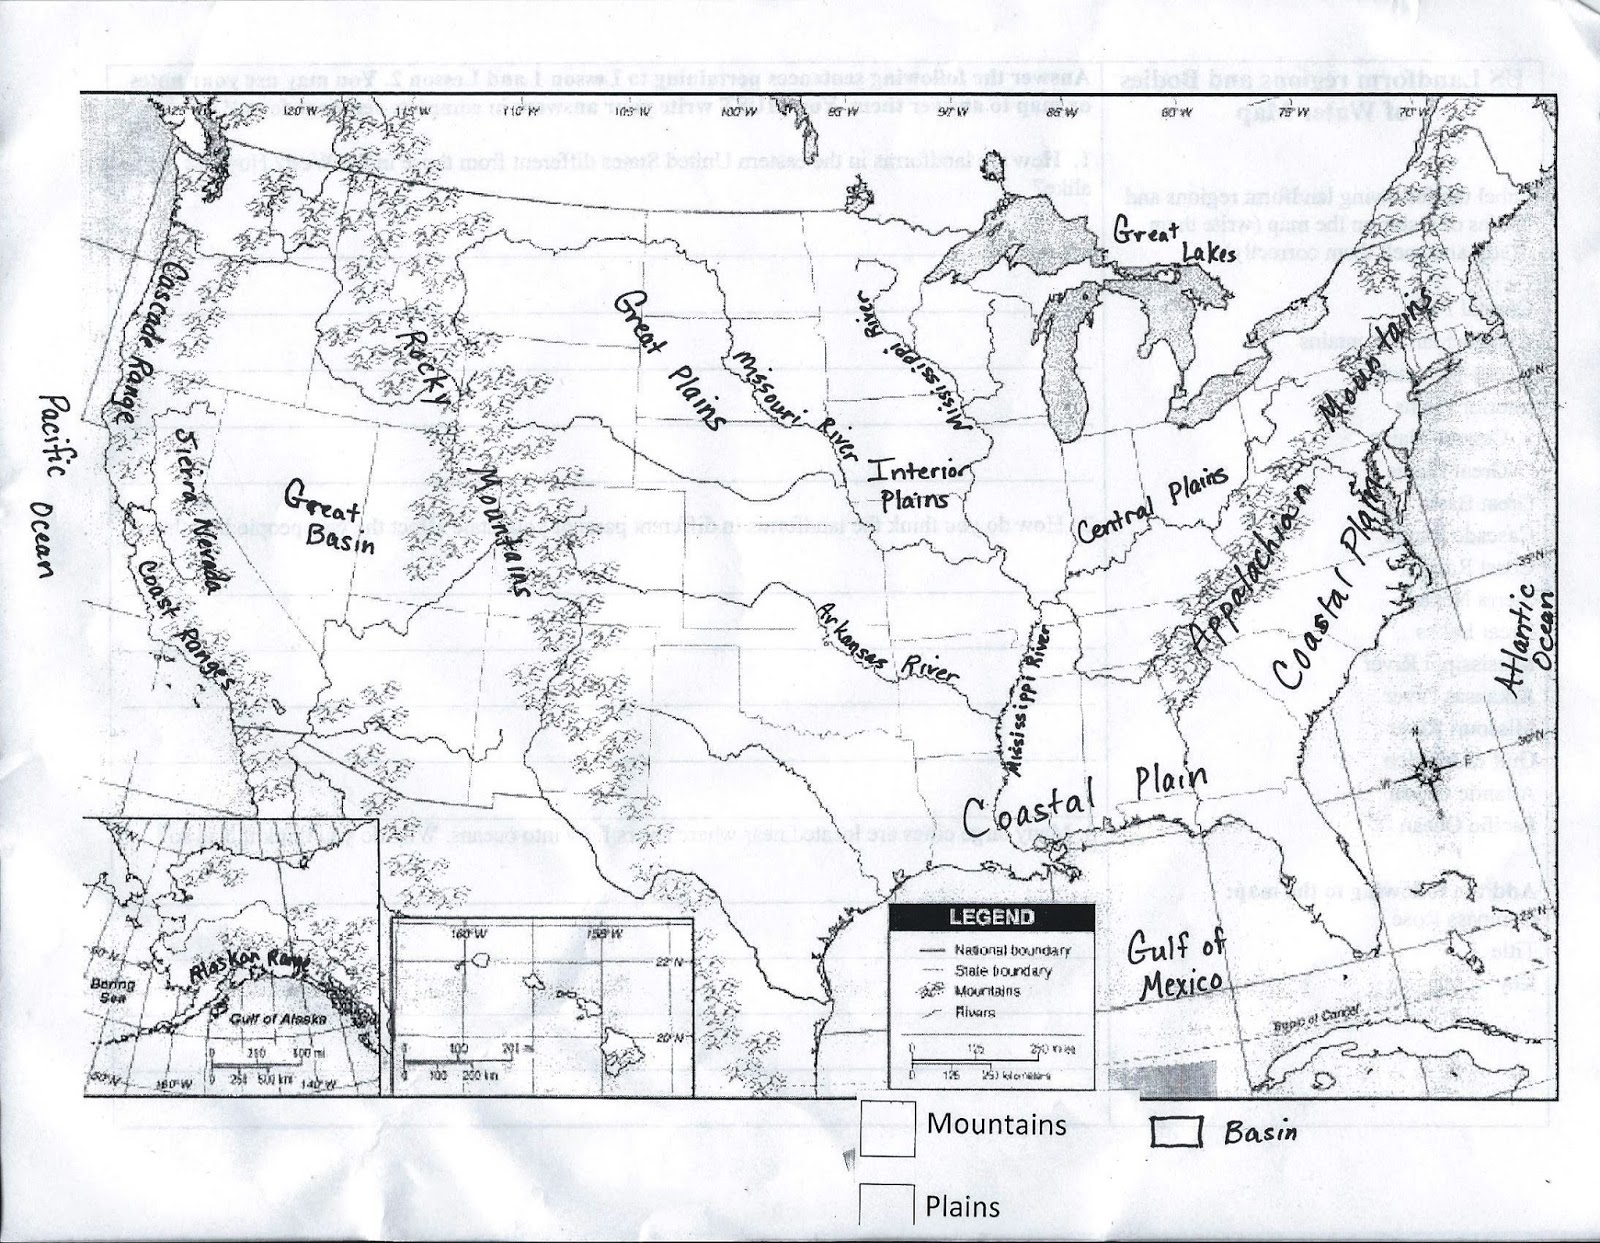 Map Of US And Canada With Rivers Mountains Plains Homeschool List - Us physical features map labeled